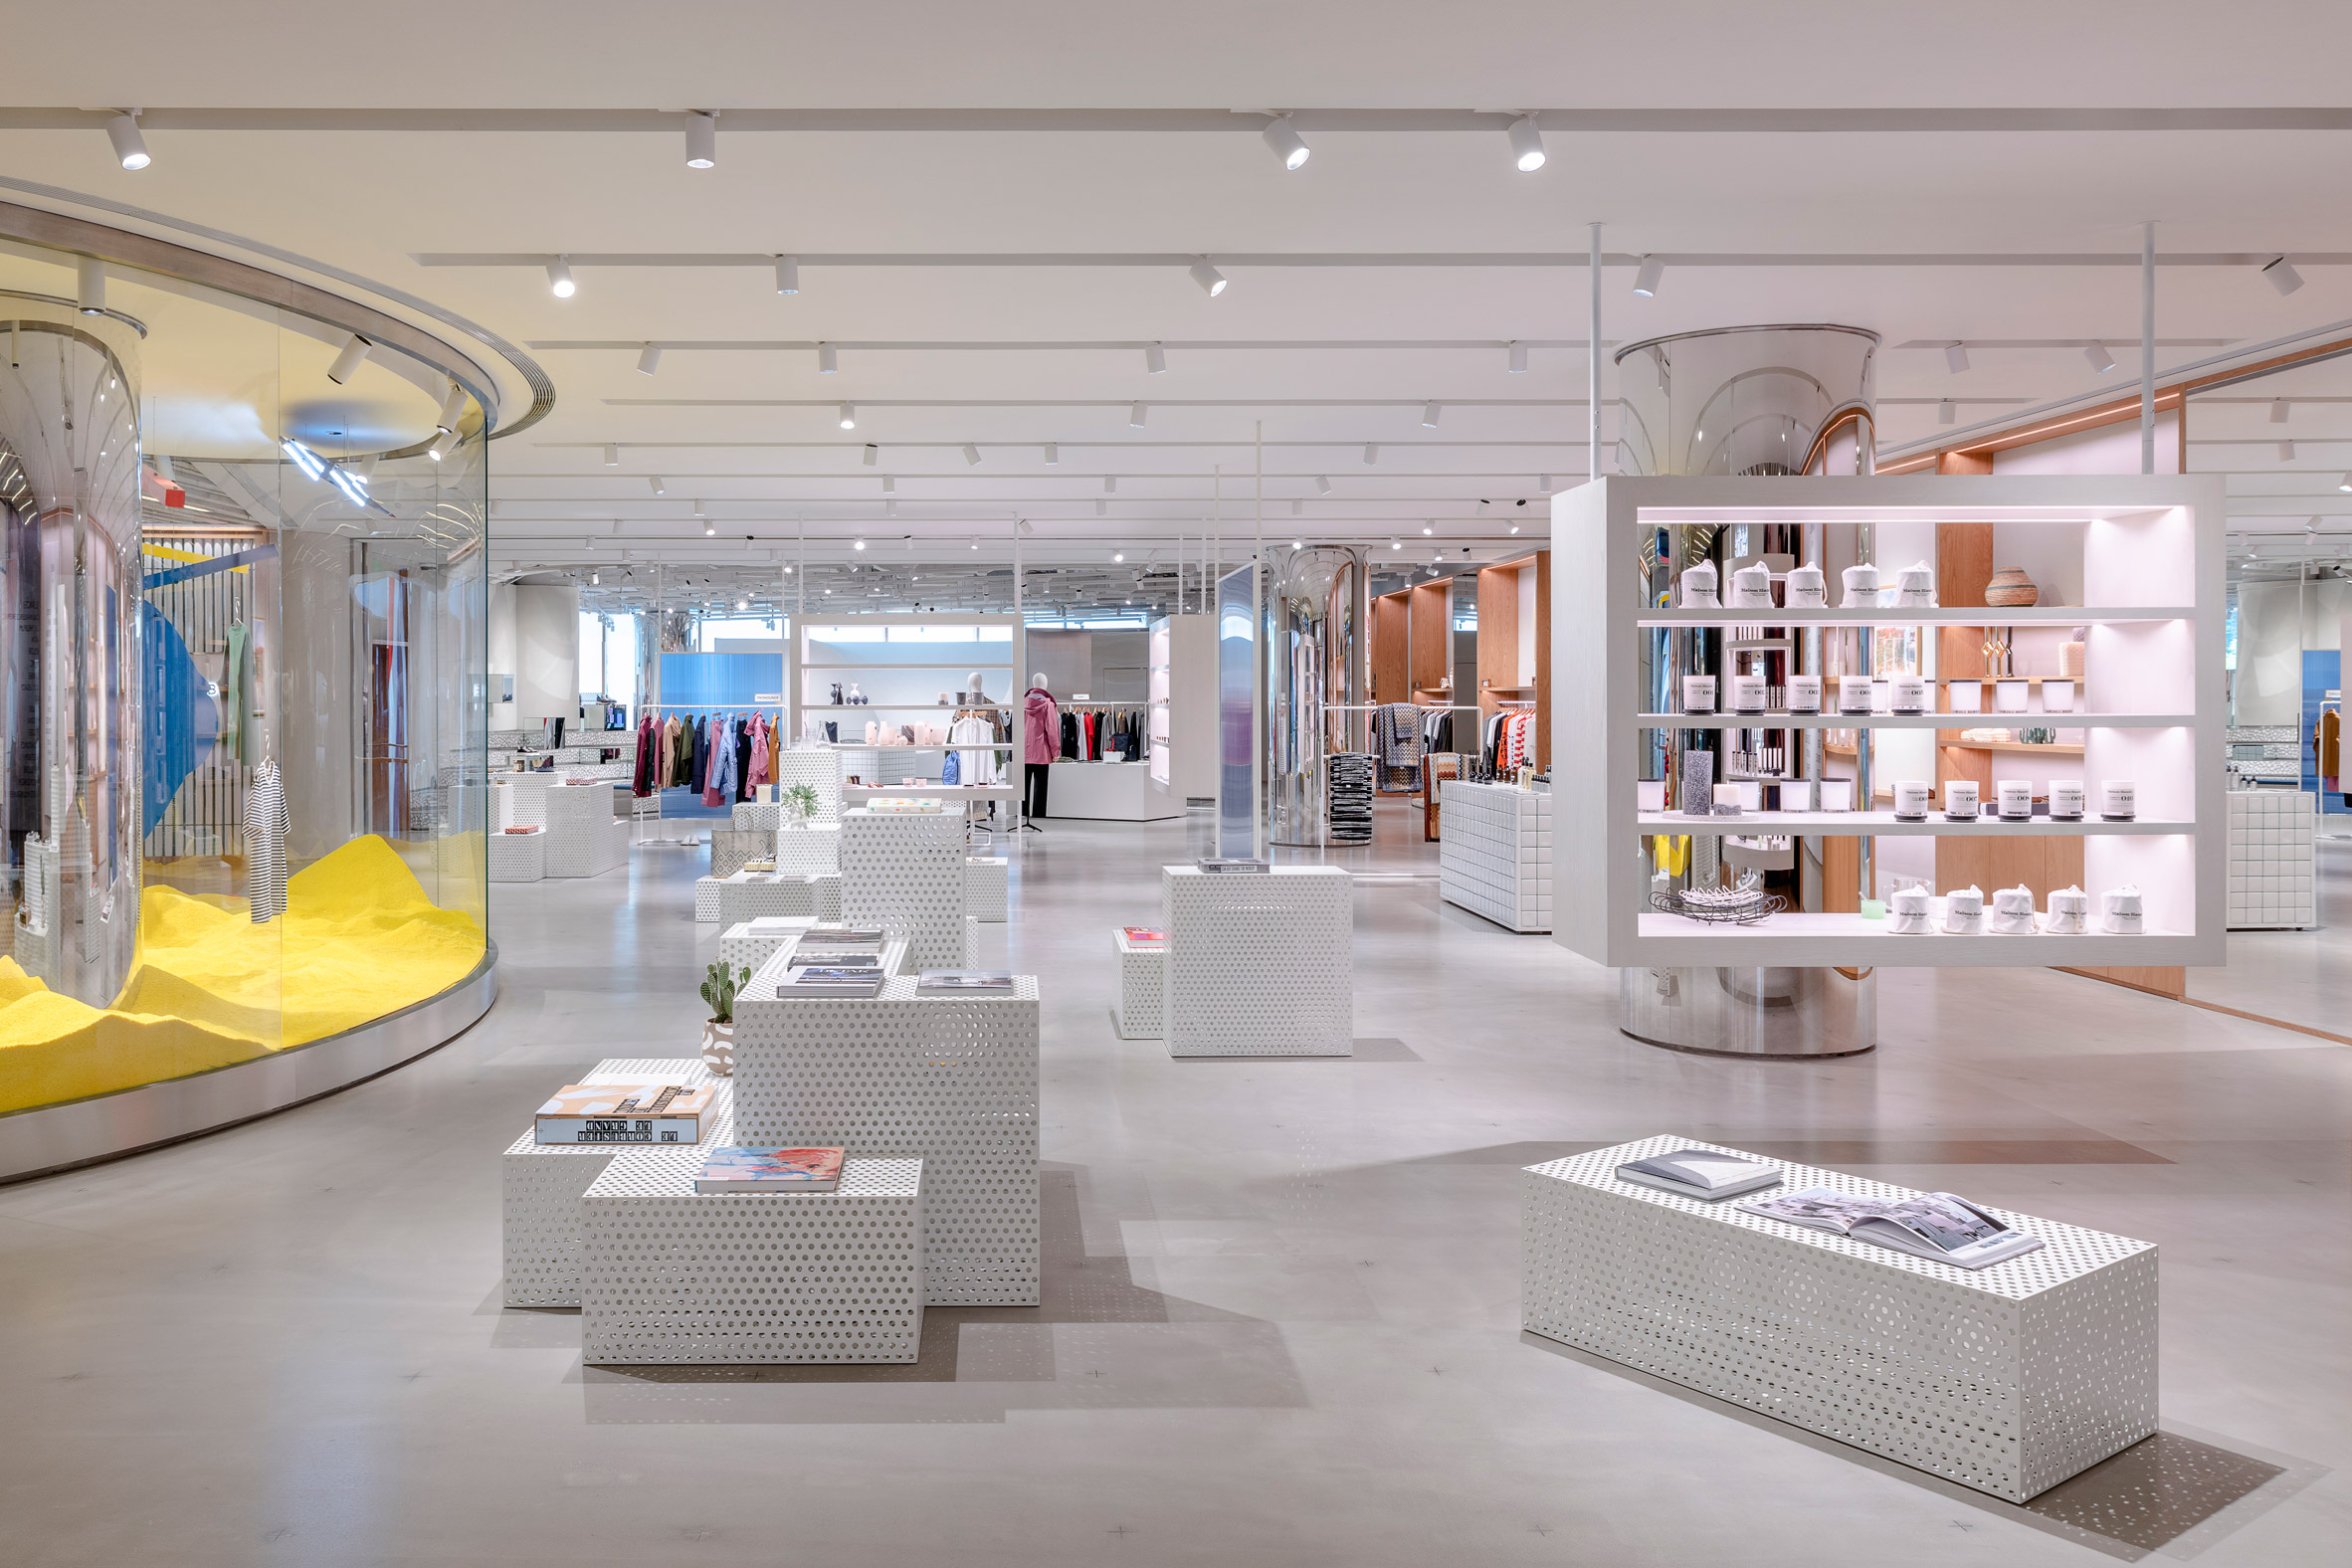 Interiors of Assemble by Réel store in Shanghai, China, designed by Kokaistudios